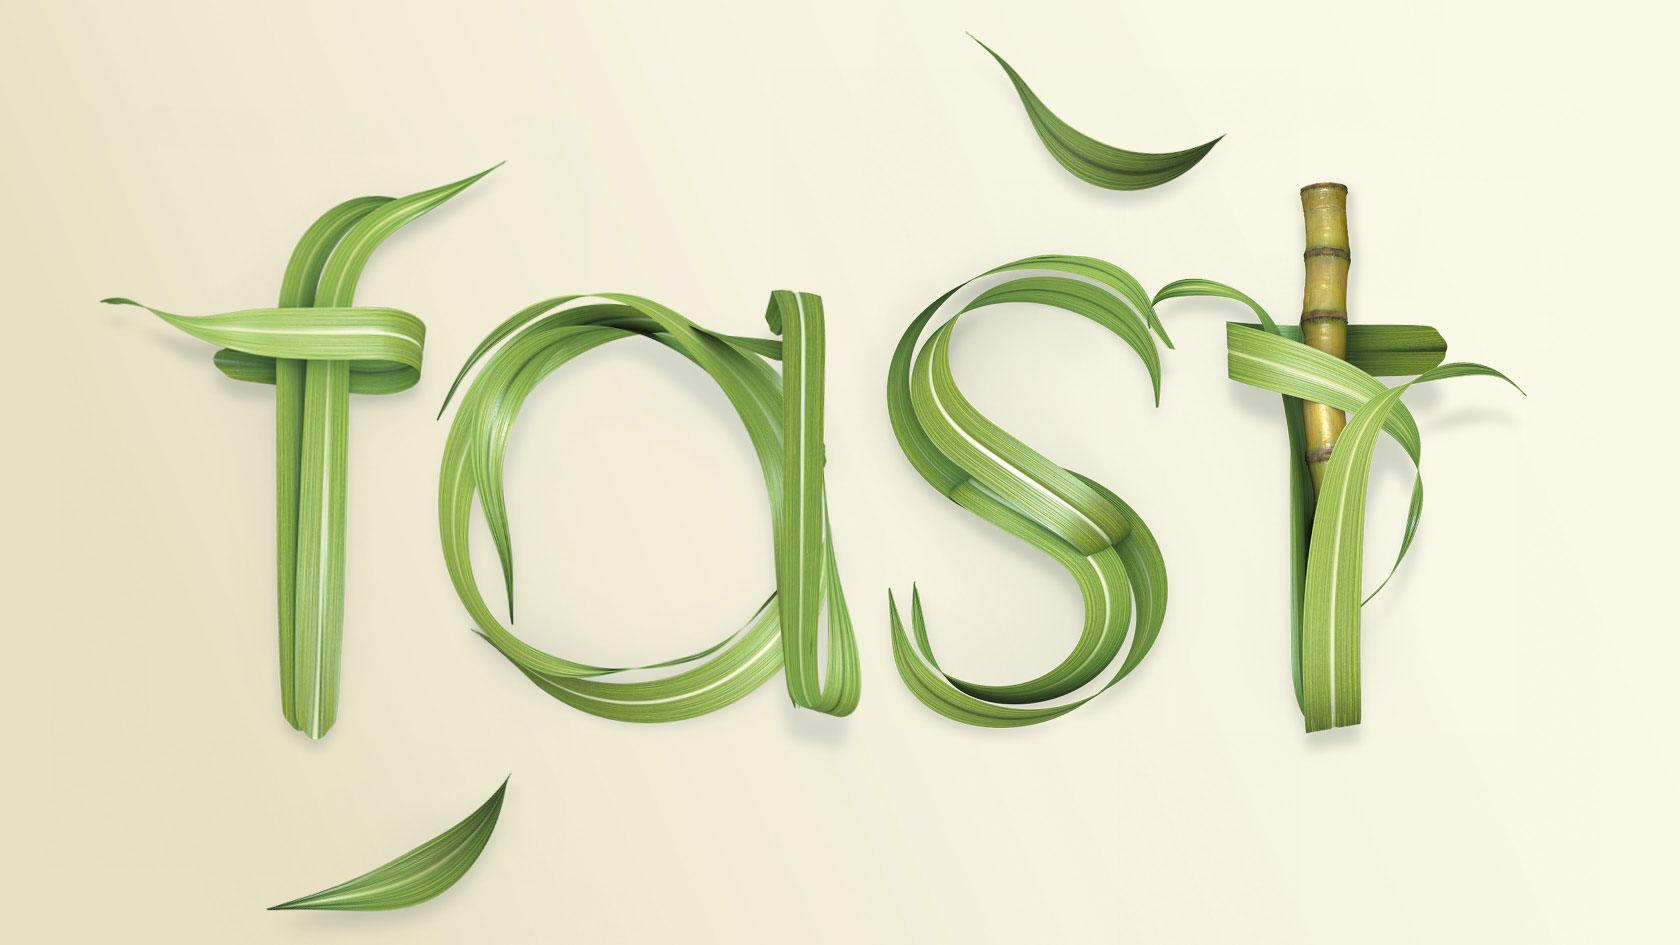 02_Castrol_Biosynthetic_typeface_fast image